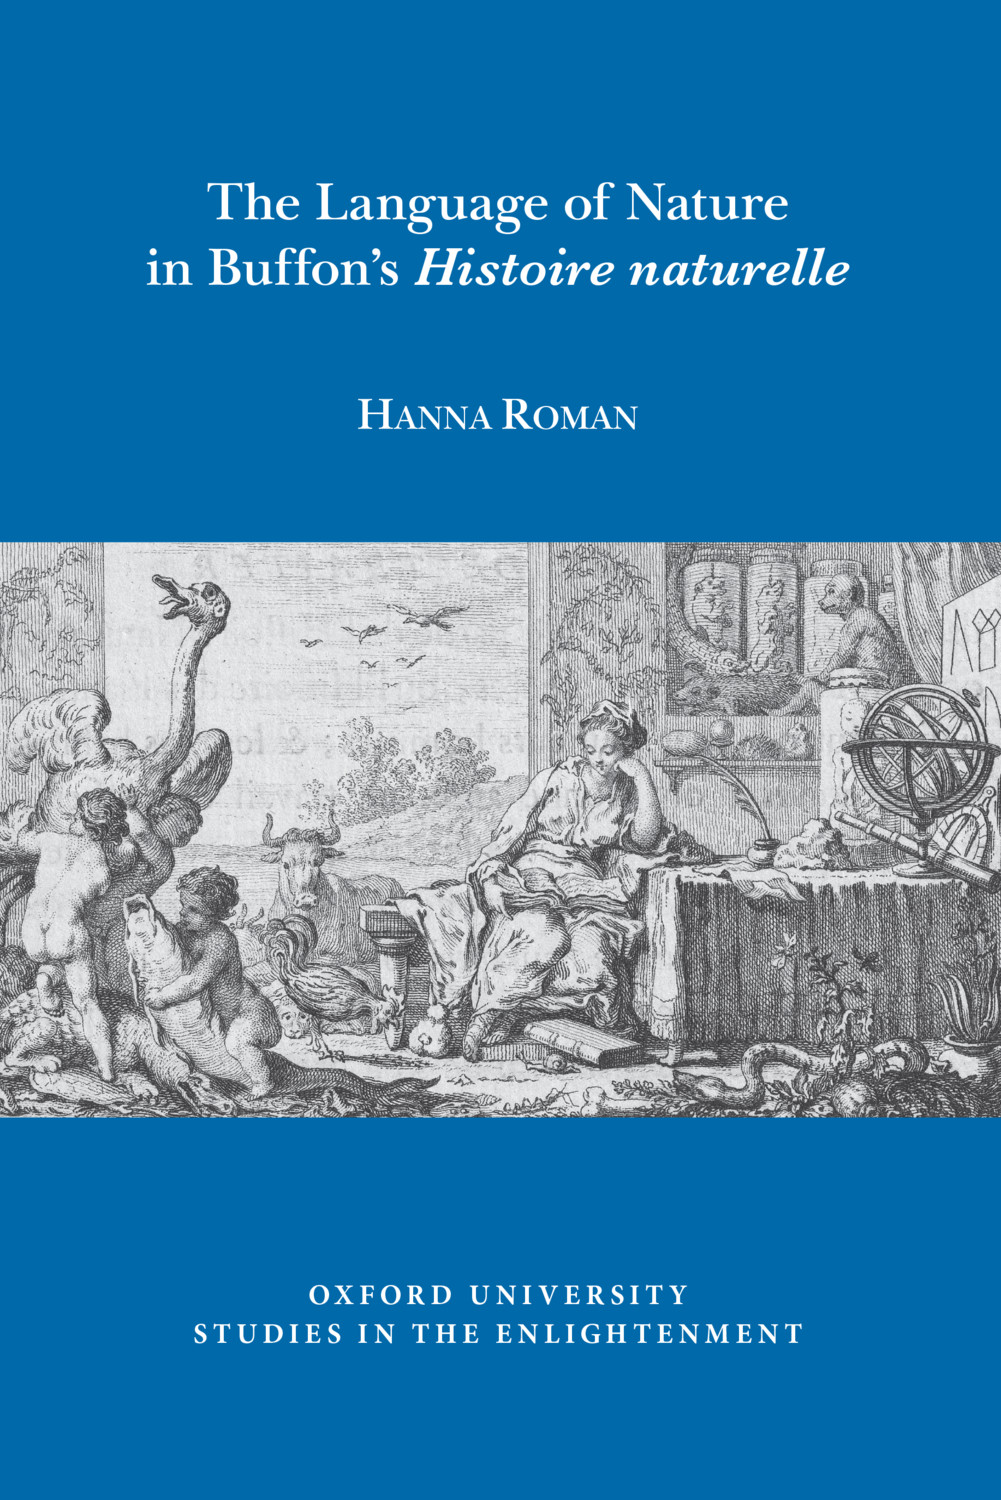 H. Roman, The Language of Nature in Buffon's Histoire naturelle